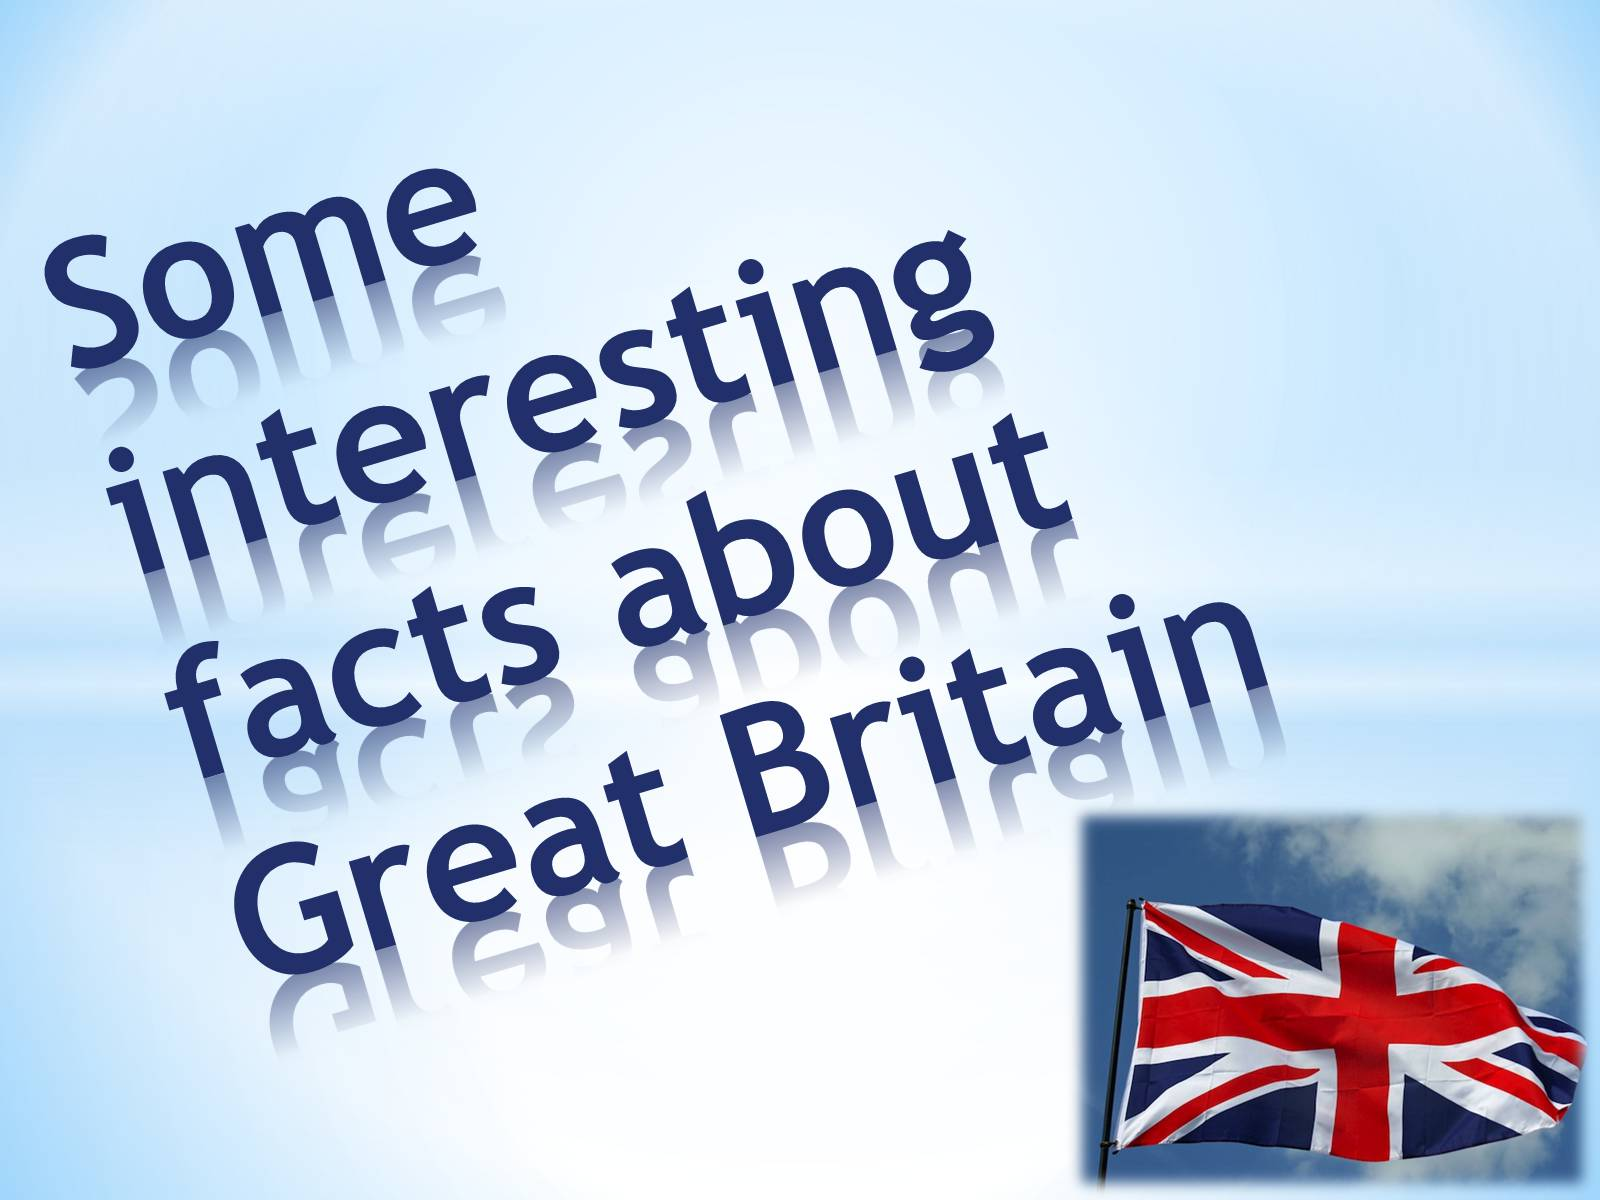 Презентація на тему «Some interesting facts about Great Britain» - Слайд #1